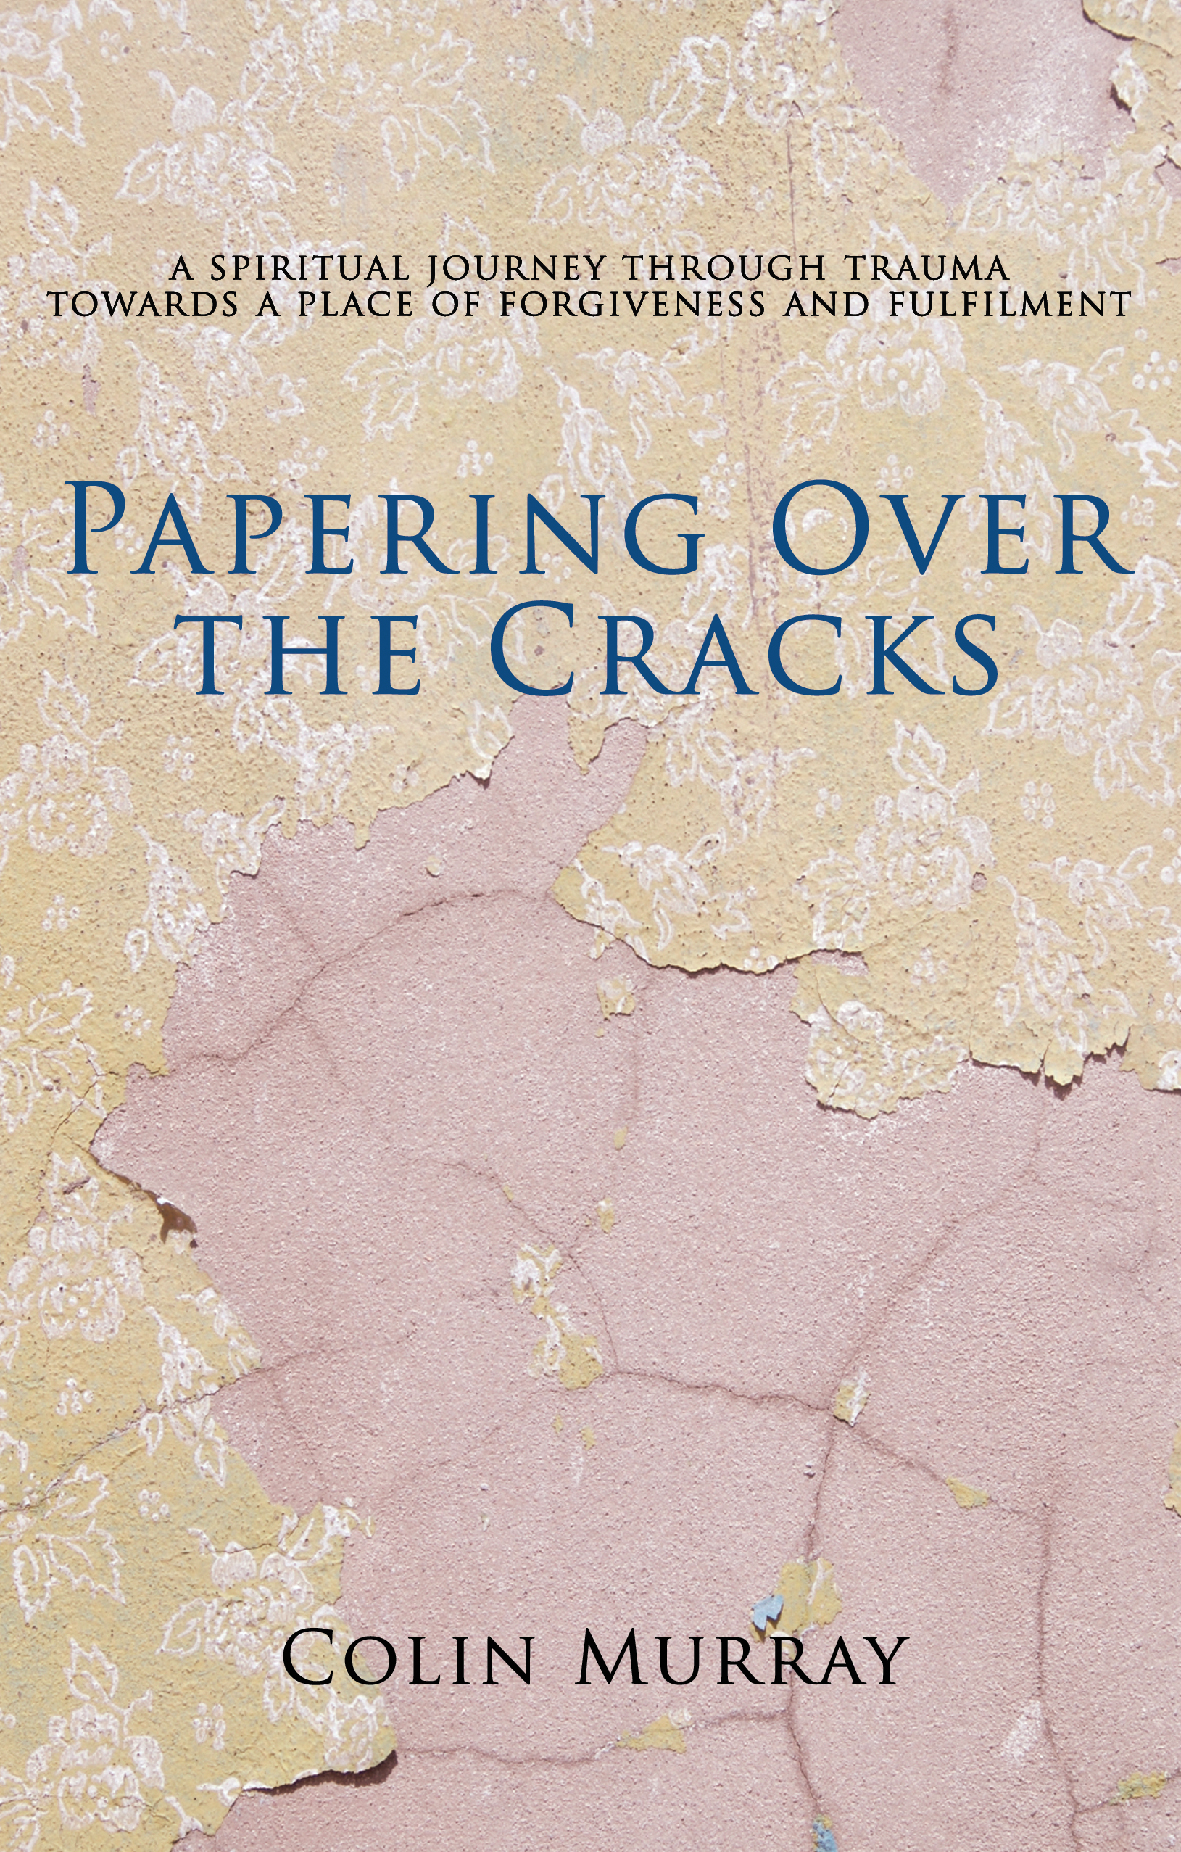 Papering Over The Cracks My spiritual journey through trauma towards a place of forgiveness and fulfilment